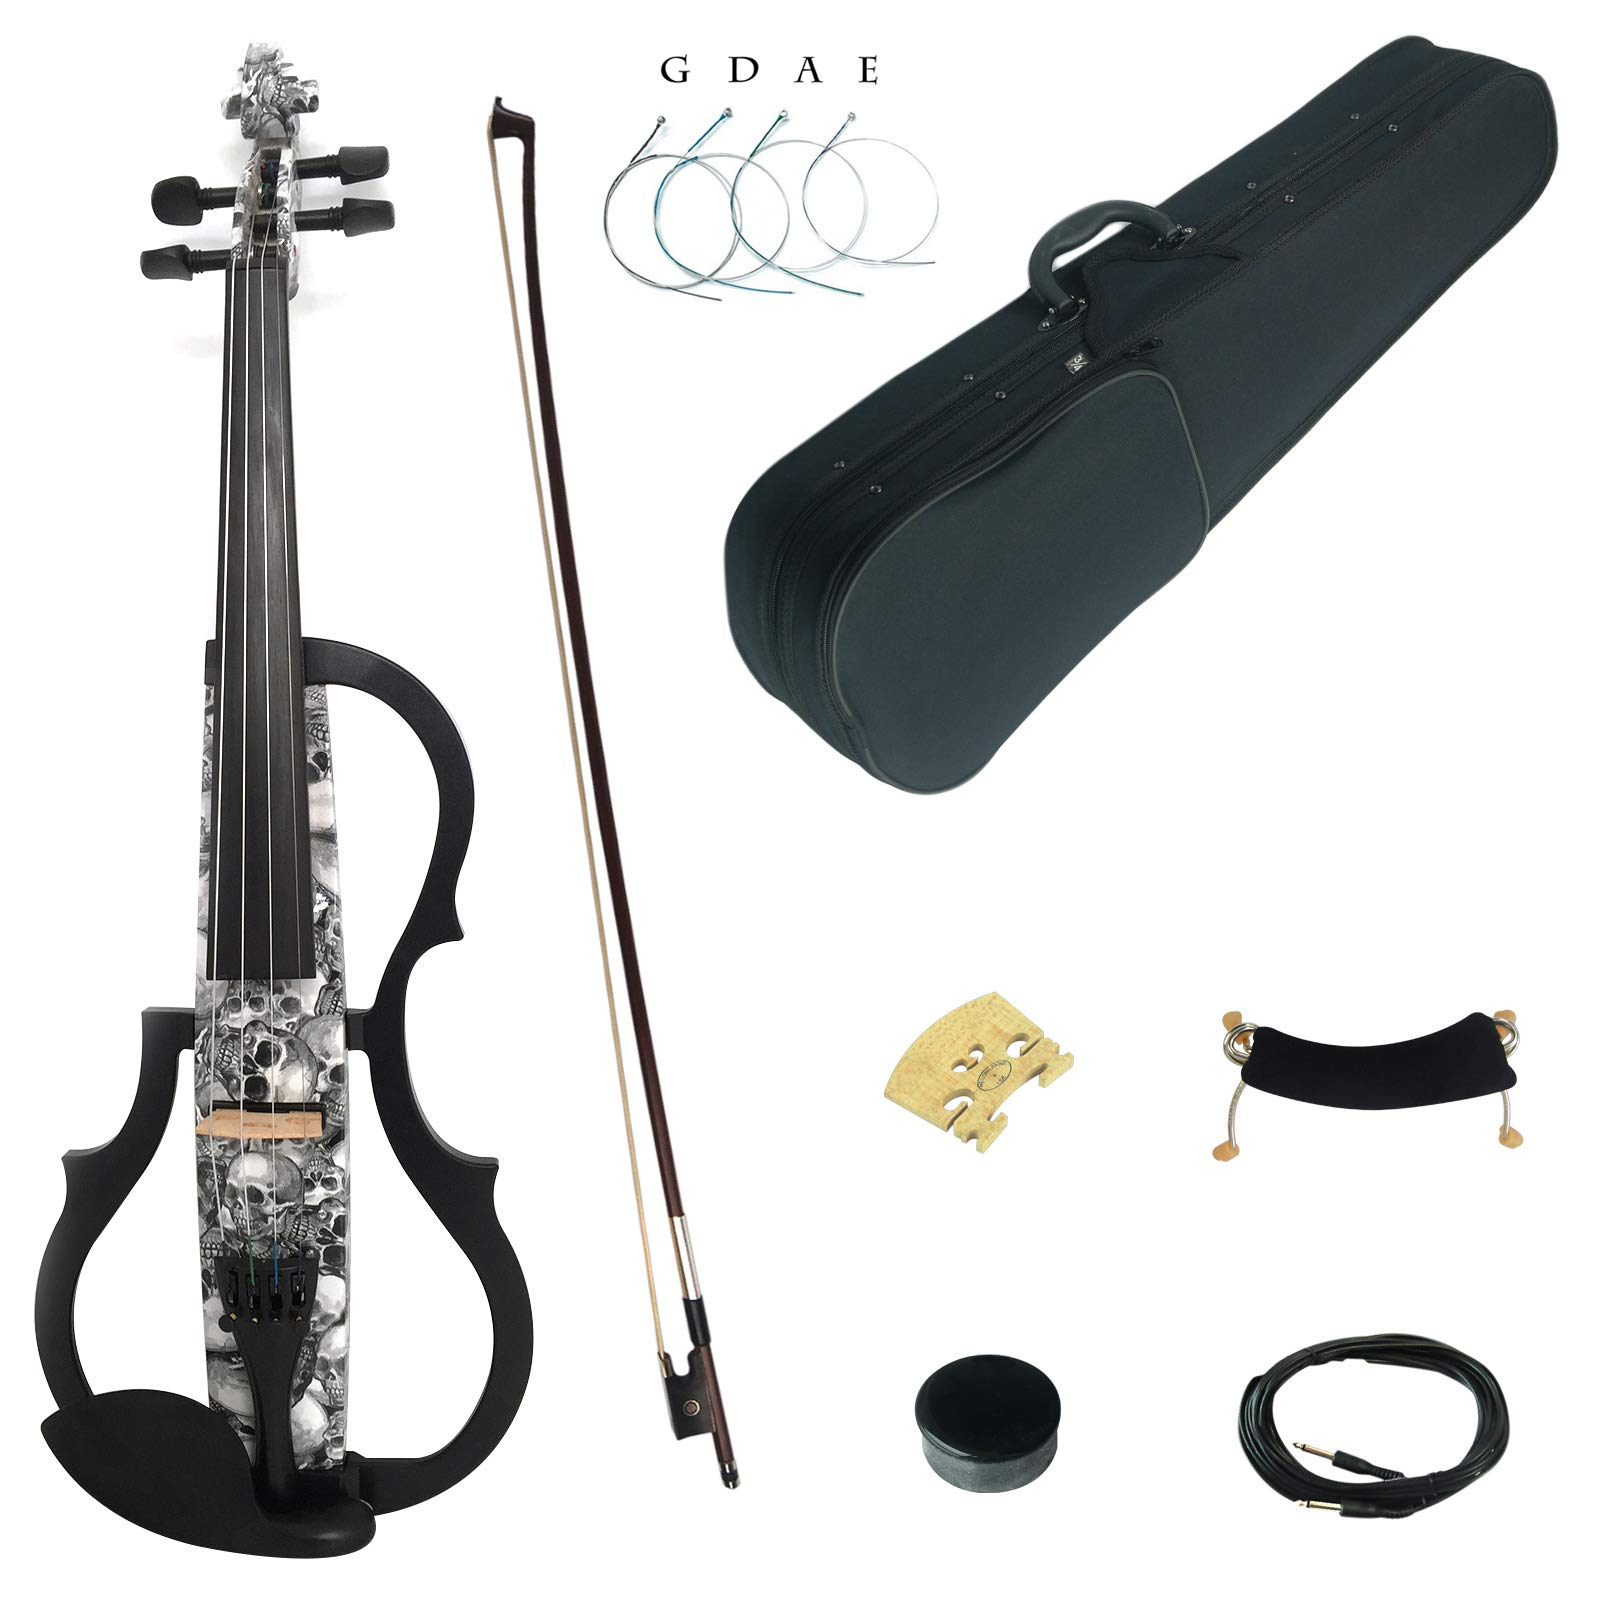 Kinglos 4/4 Black White Skull Colored Solid Wood Advanced 3-Band-EQ Electric / Silent Violin Kit with Ebony Fittings Full Size (SDDS1312) by Kinglos